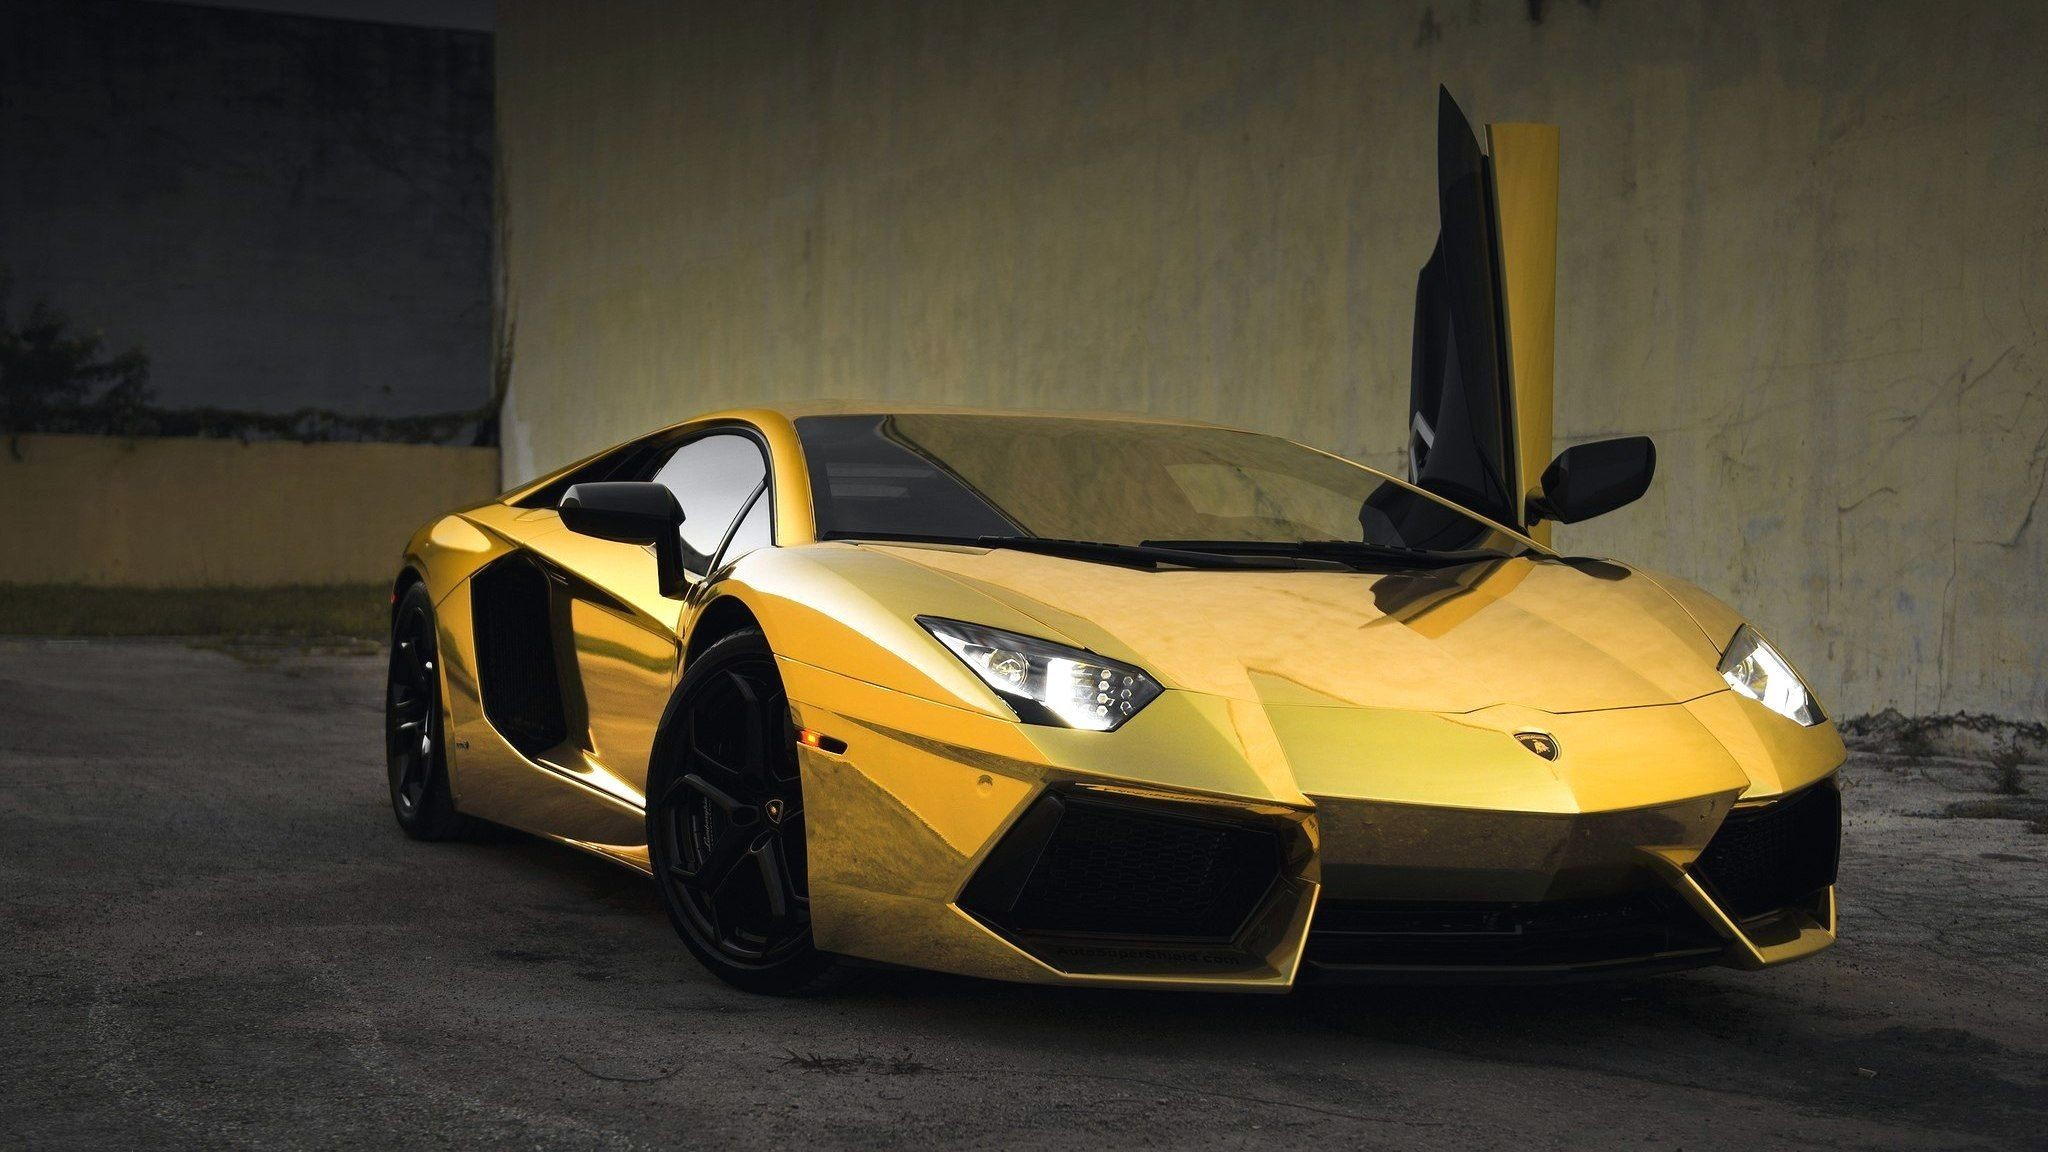 JNH:718 – Cool Gold Cars Wallpapers, New Gold Cars HD Wallpapers .